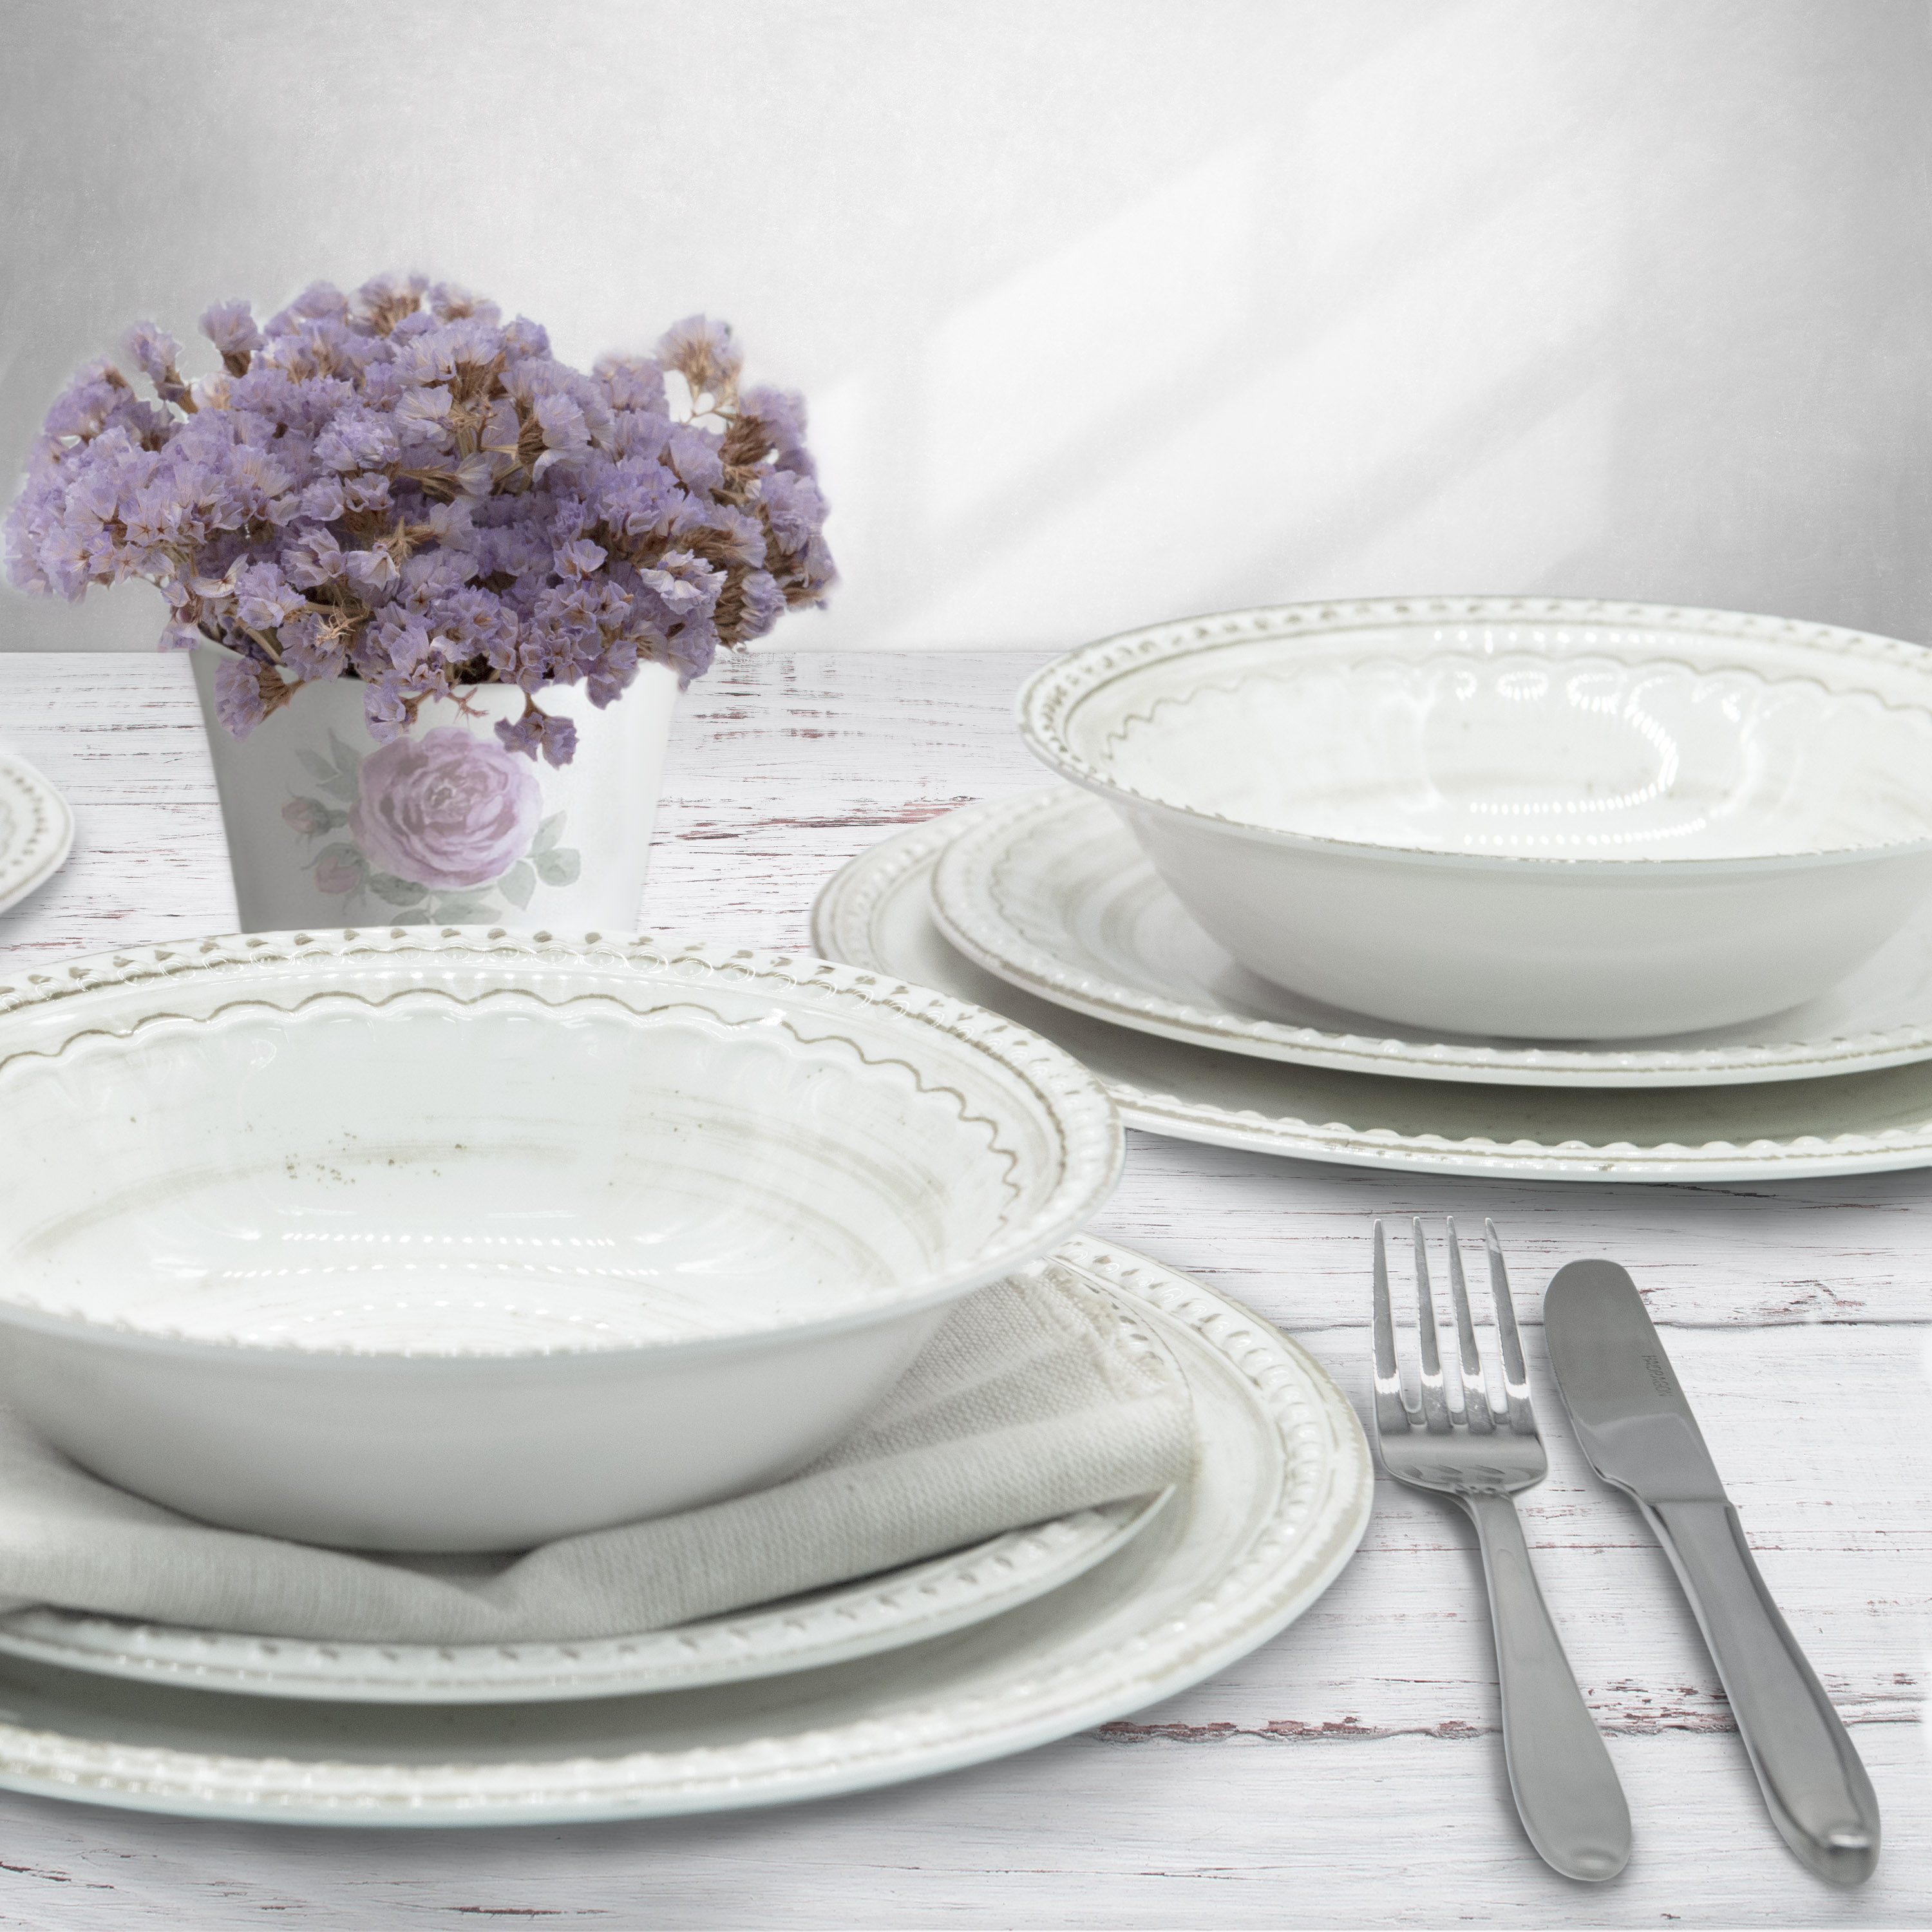 French Country Plate & Bowl Sets, White, 12-piece set slideshow image 2